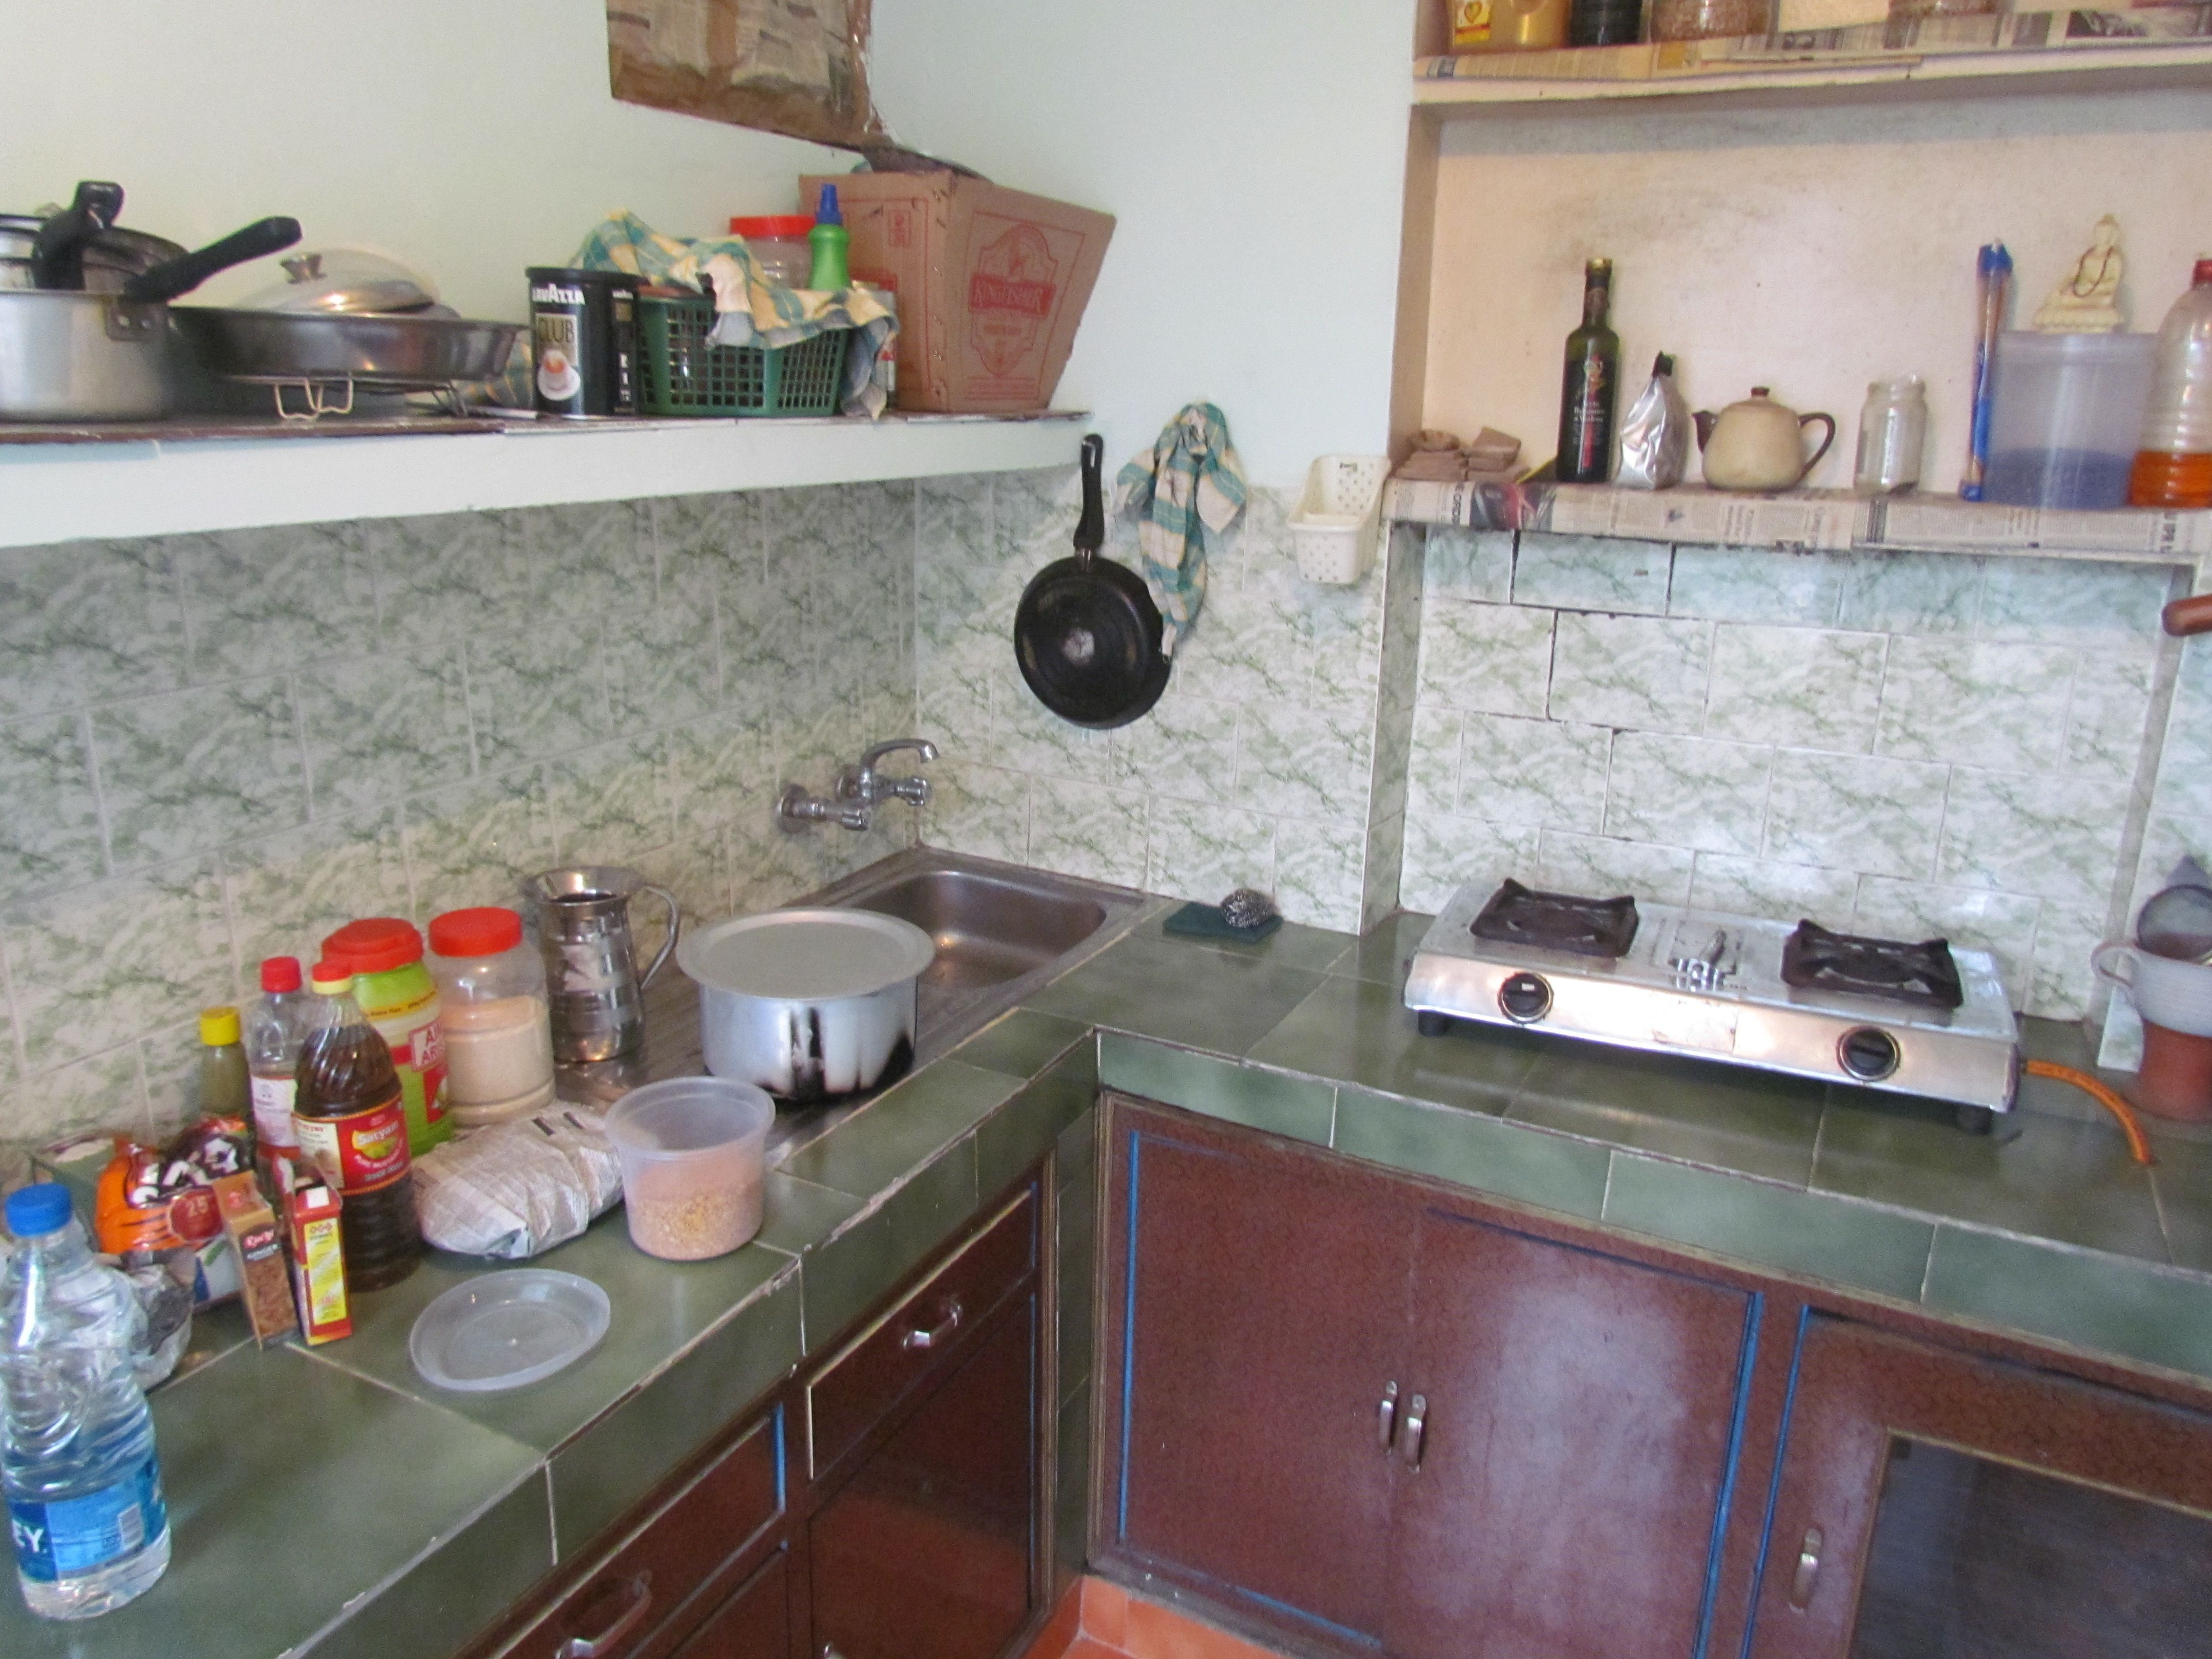 Indian middle class kitchen design - Lower Middle Class Kitchen Google Search